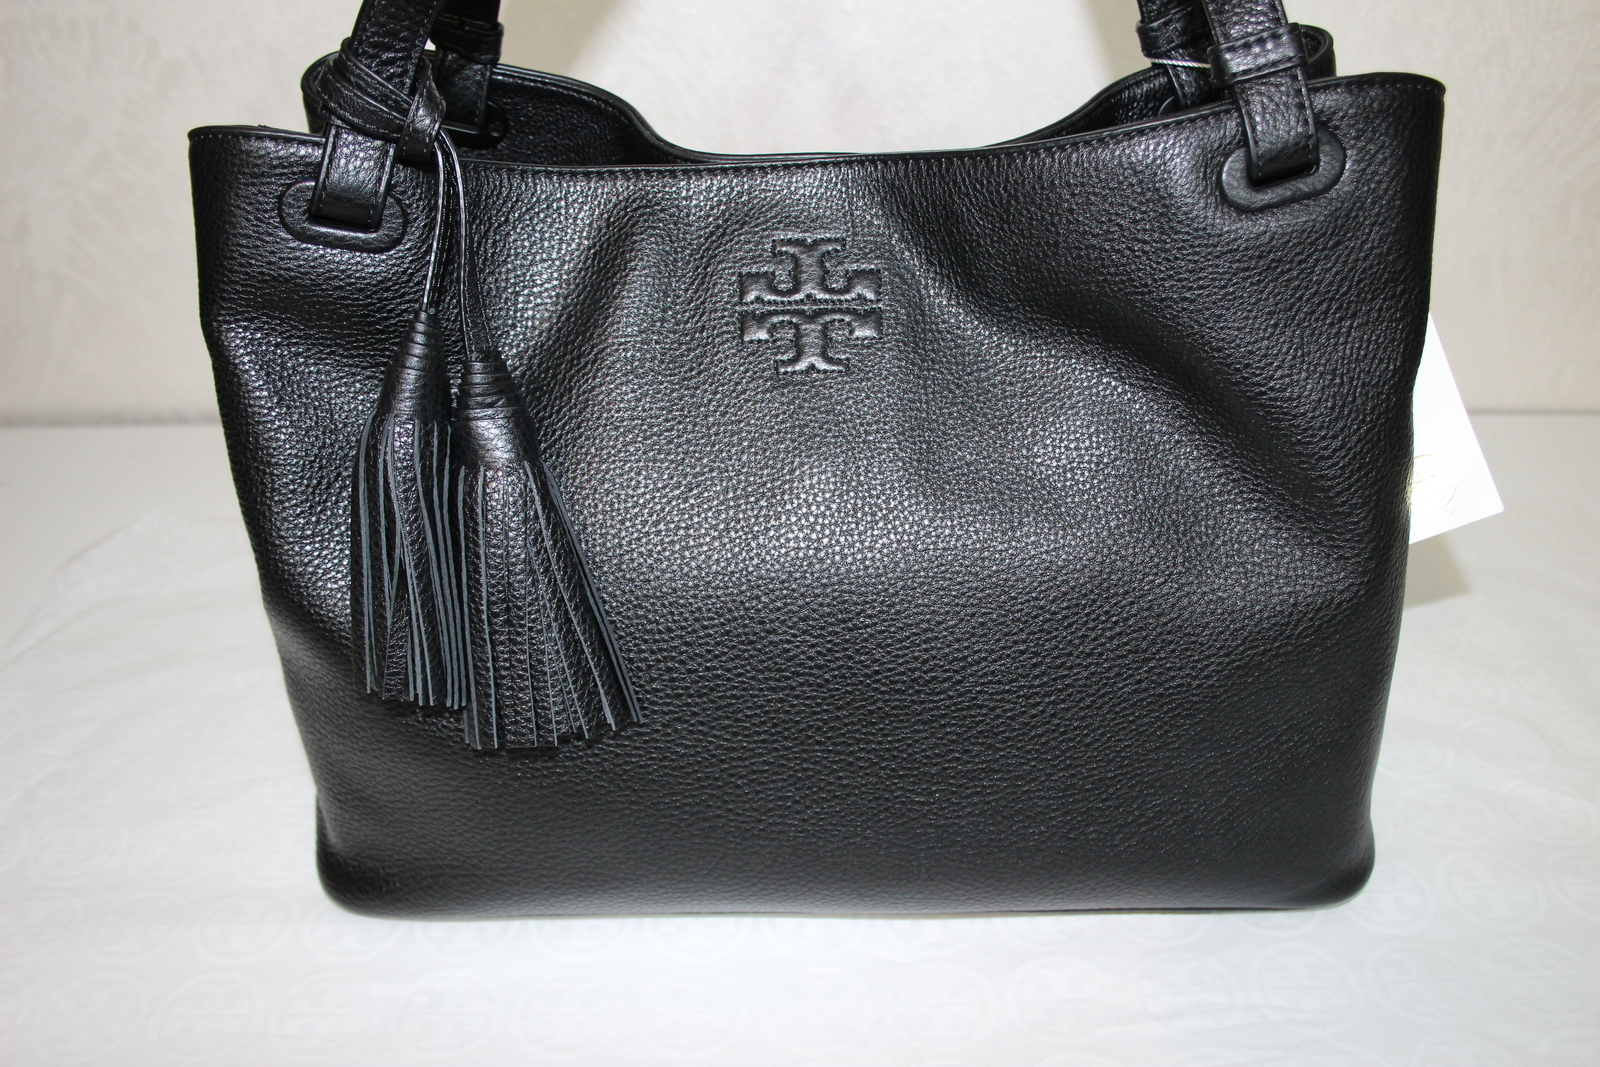 d70547a49c04 Tory Burch Thea Center Zip Tote Bag Black Leather  500 11169713